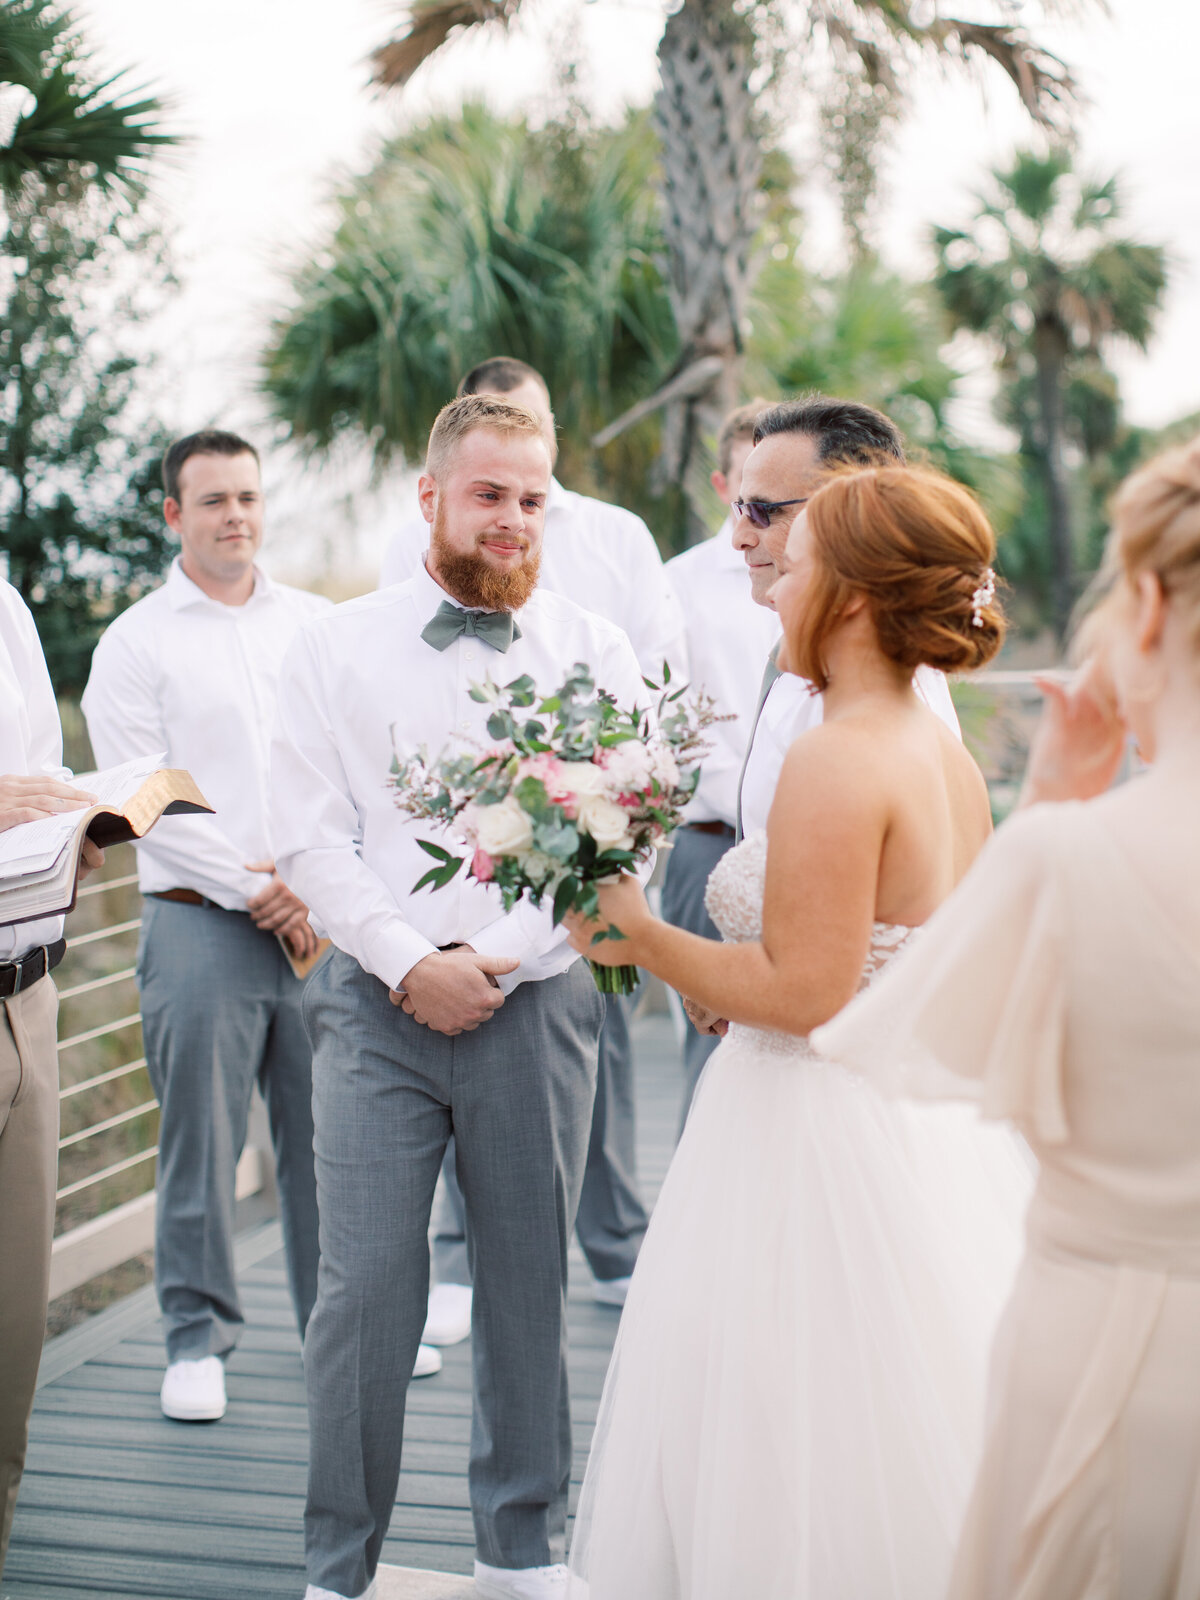 Charleston Wedding Photographer | Beaufort Wedding Photographer | Savannah Wedding Photographer | Santa Barbara Wedding Photographer | San Luis Obispo Wedding Photographer-15